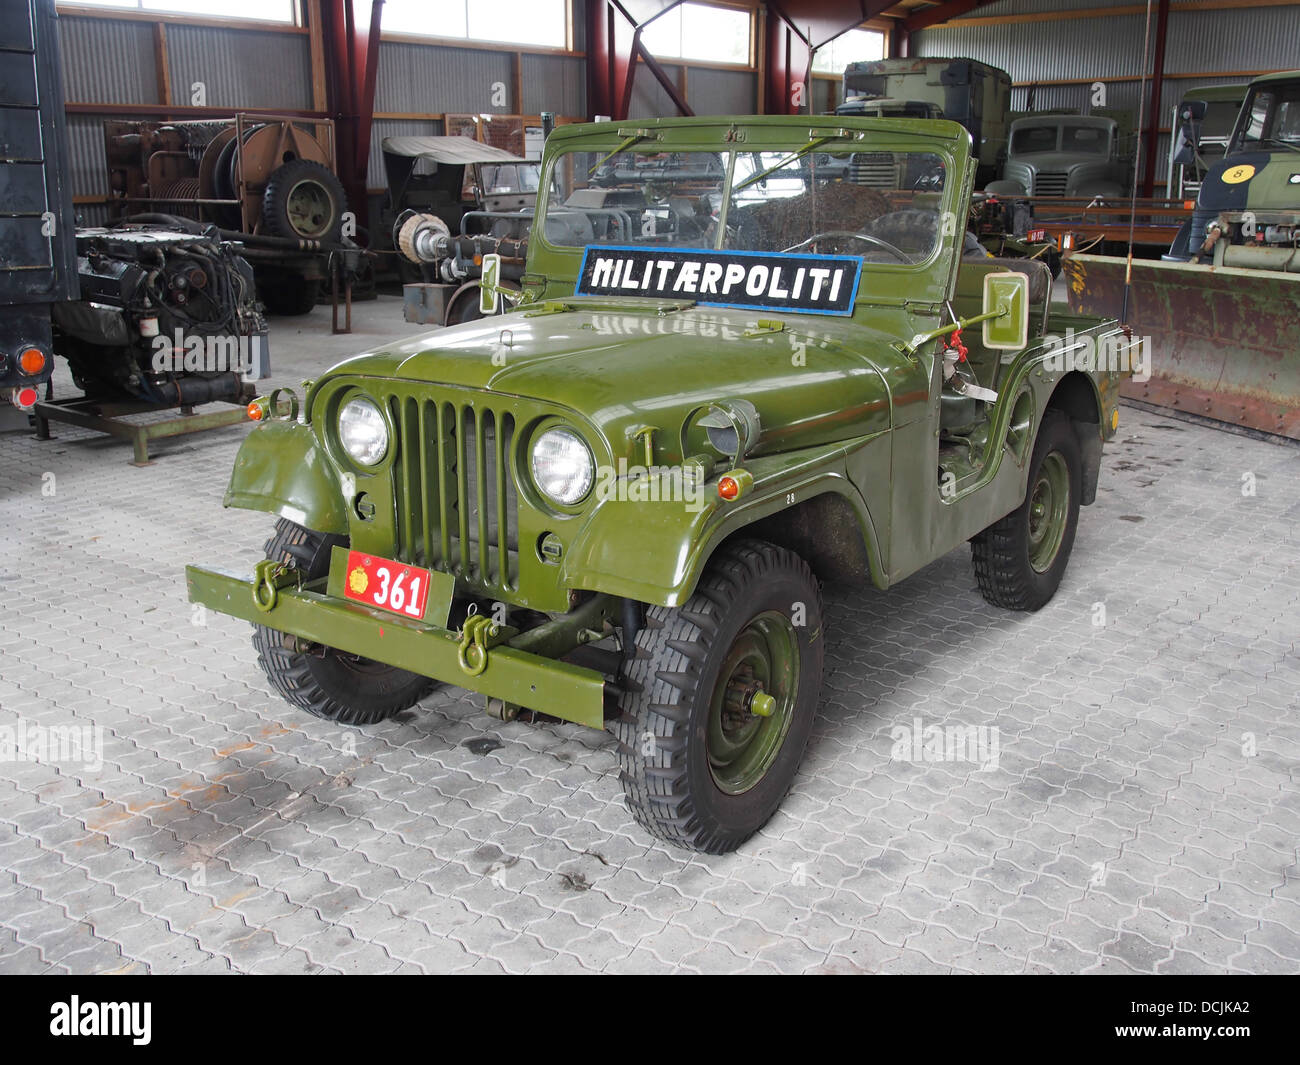 Willy's Militaerpoliti, photographed at the Aalborg Forsvars- og Garnisonsmuseum - Stock Image